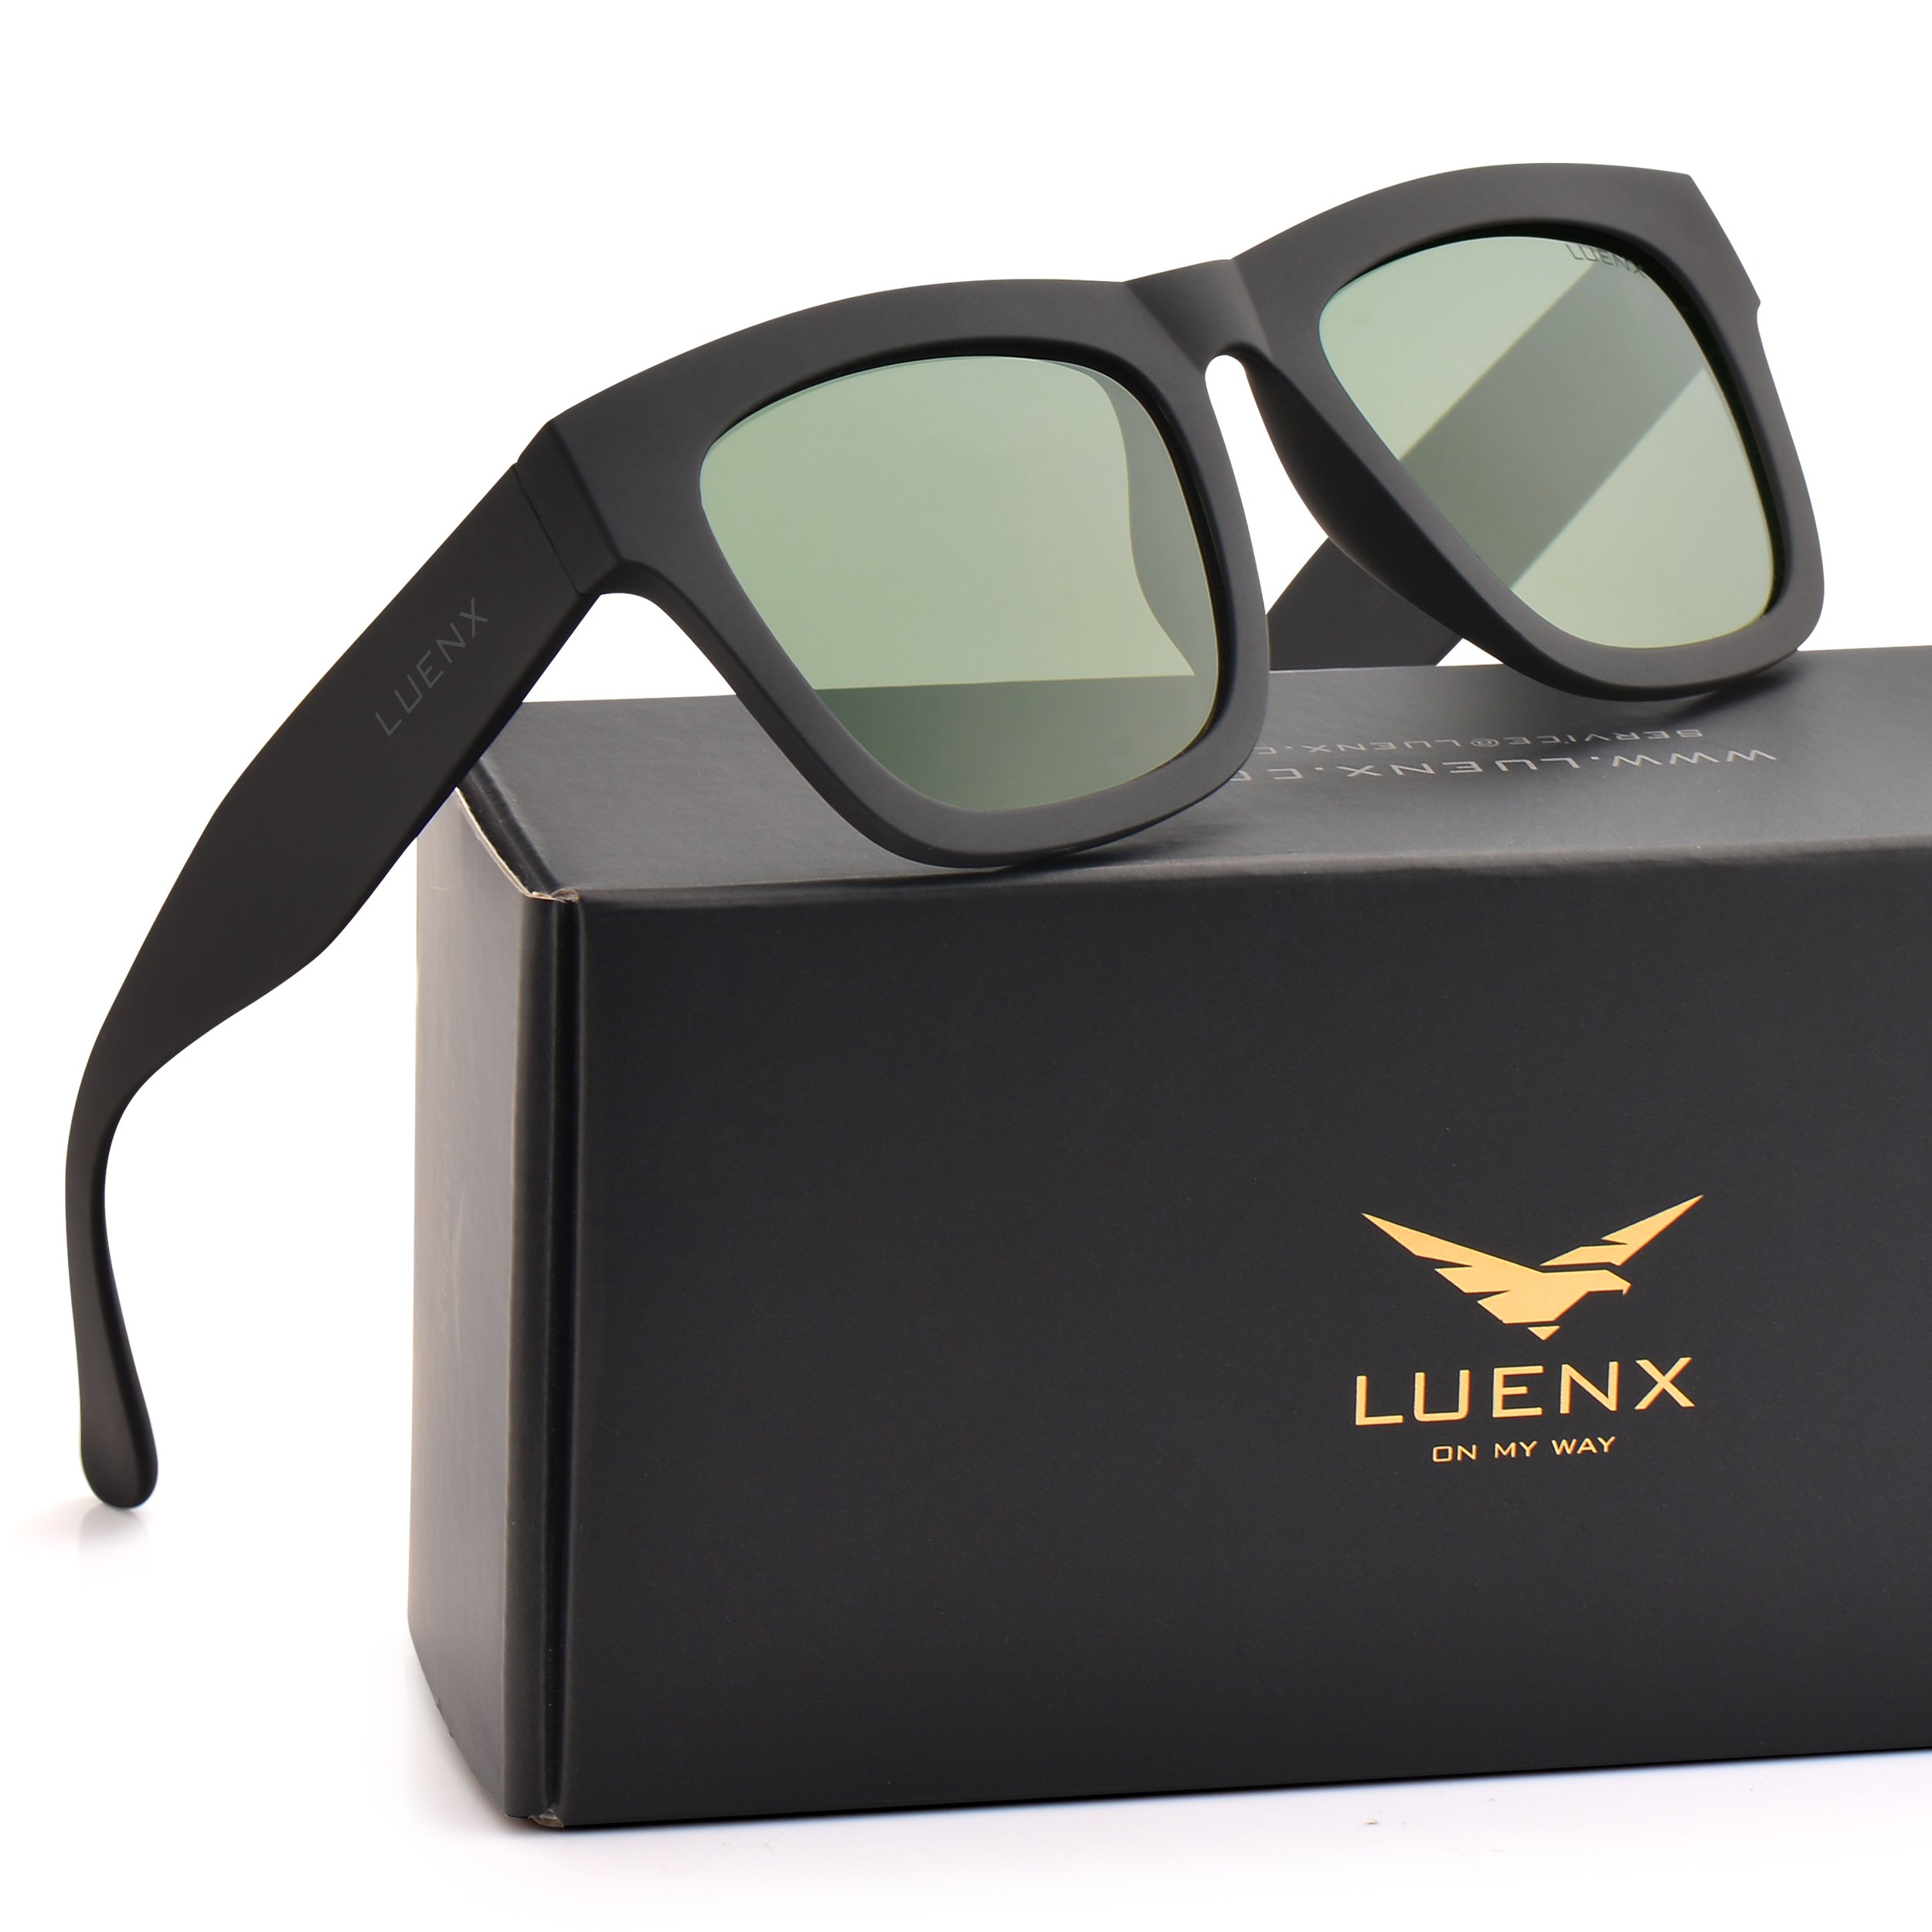 Mens Wayfarer Polarized Sunglasses for Womens UV 400 Protection Grey Green Lens Matte Black Frame 58MM,by LUENX with Case